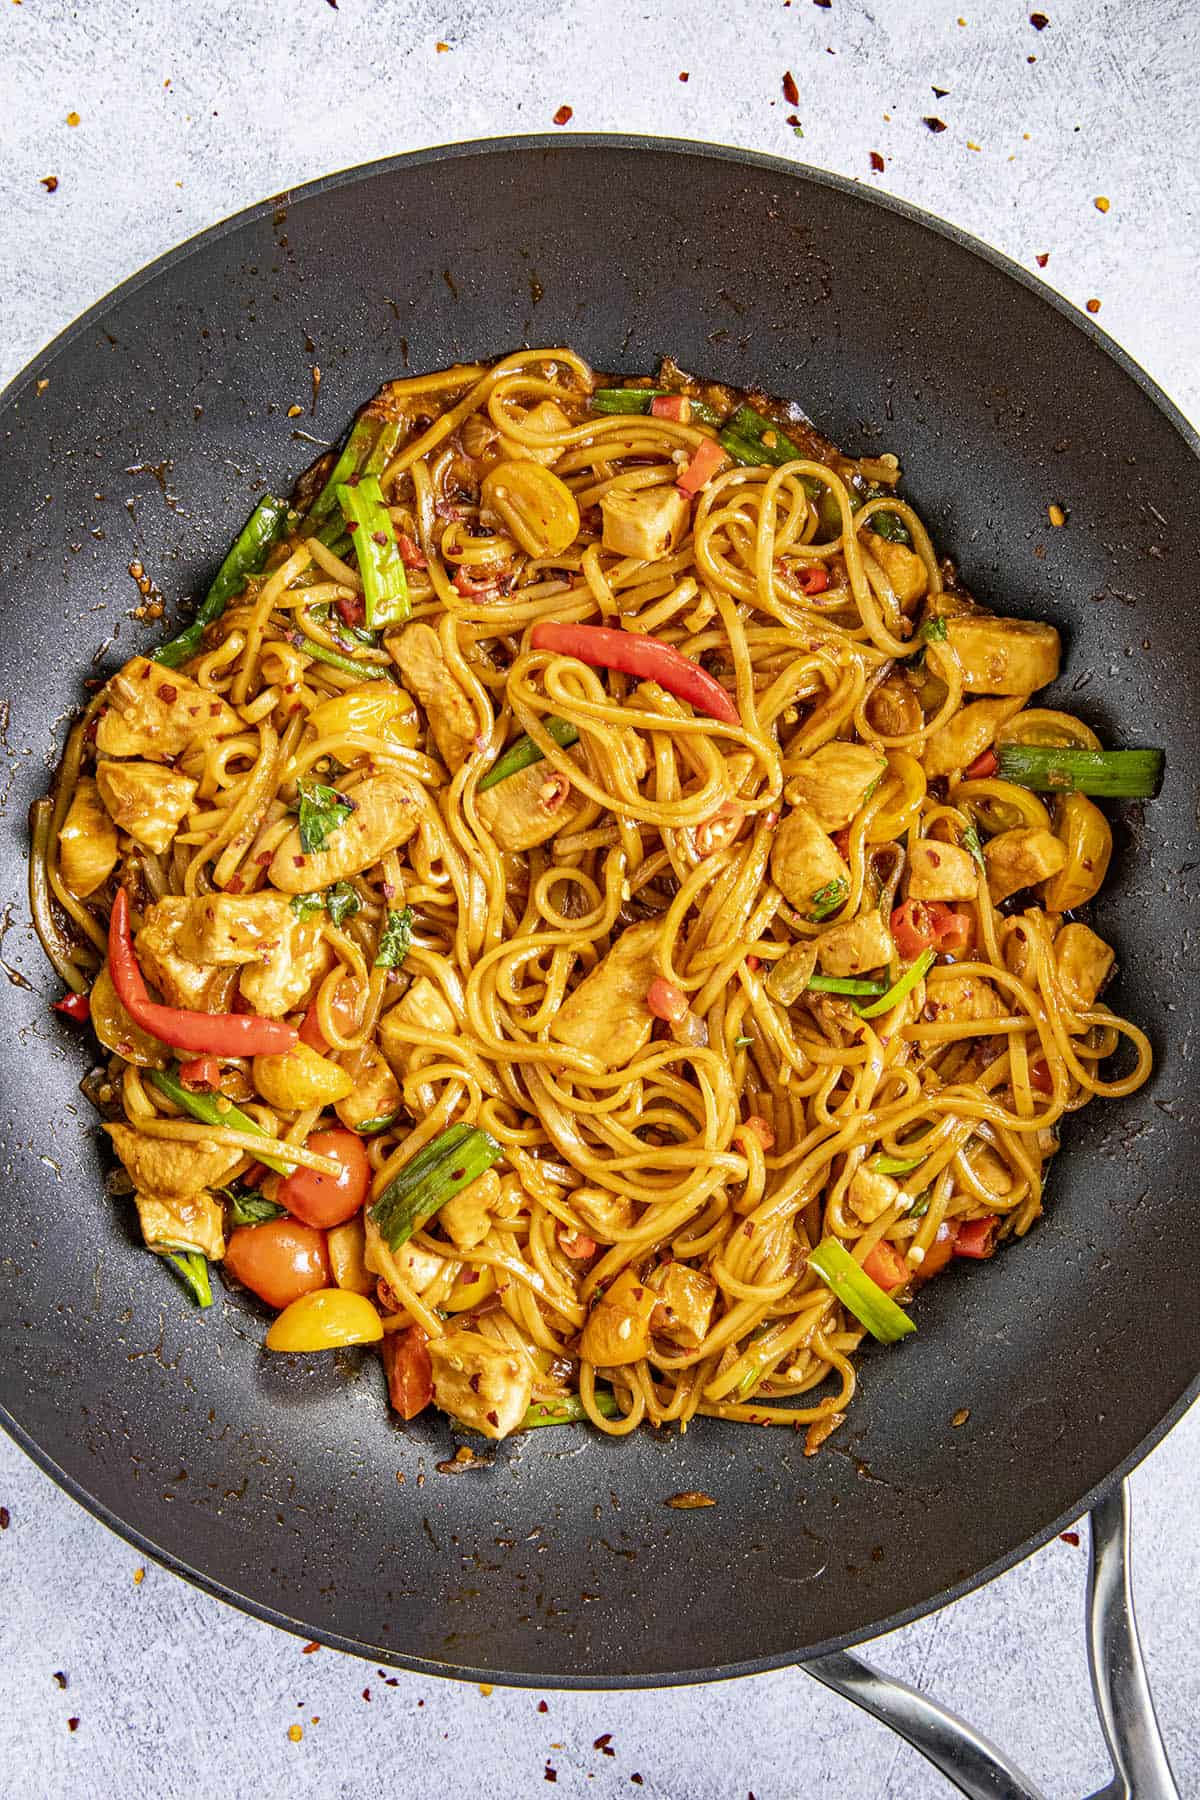 Spicy Drunken Noodles in a pan with chili flakes and green onion